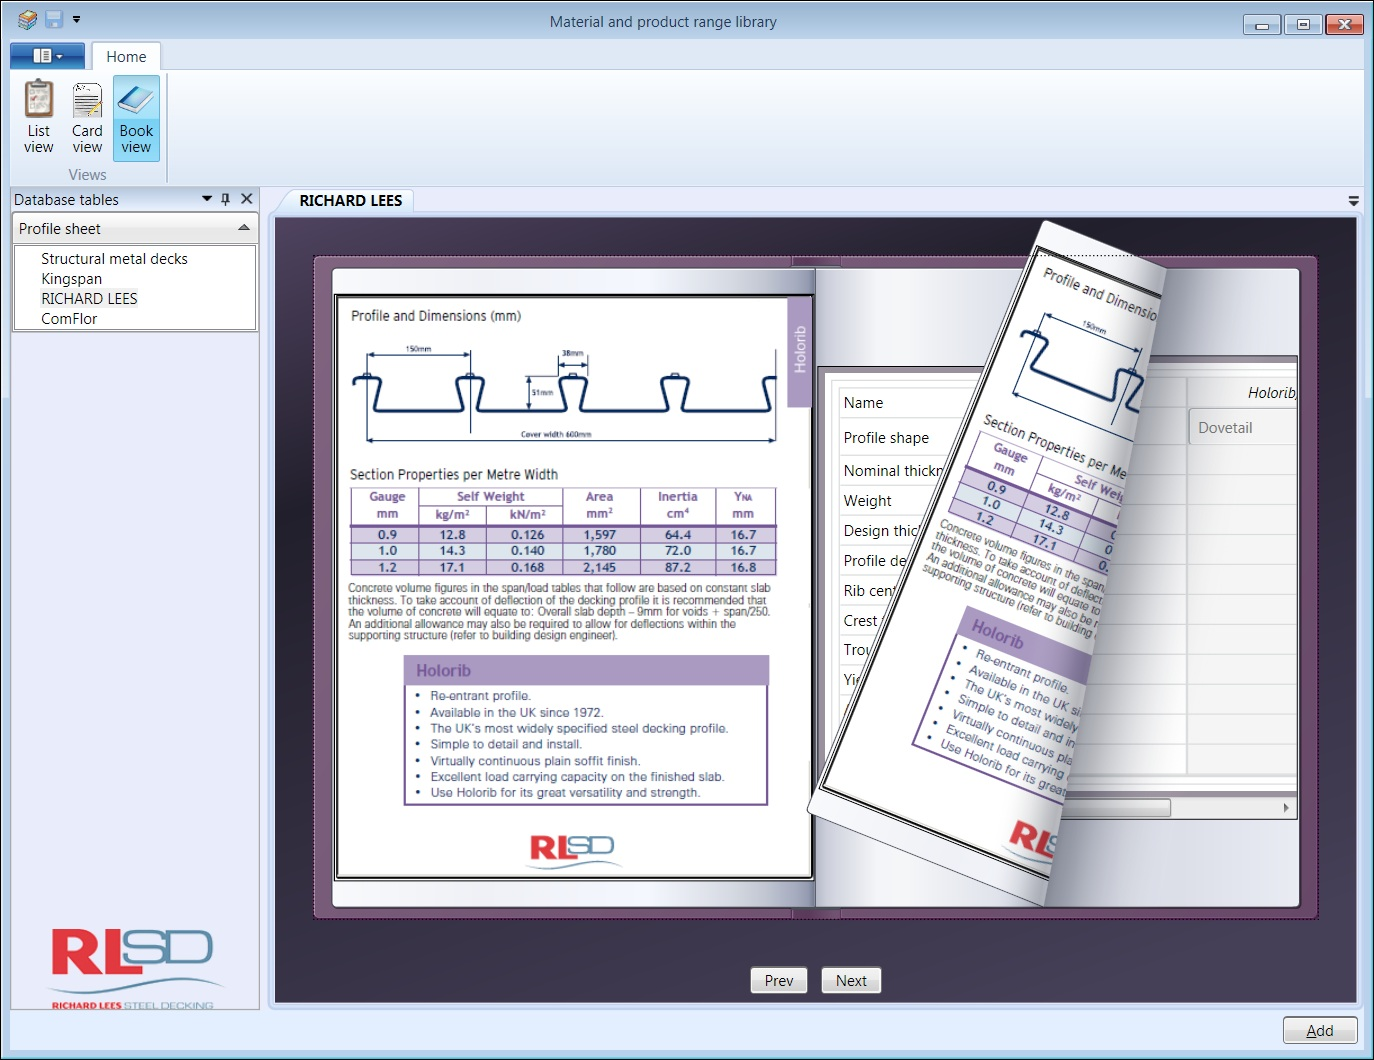 Database Book View